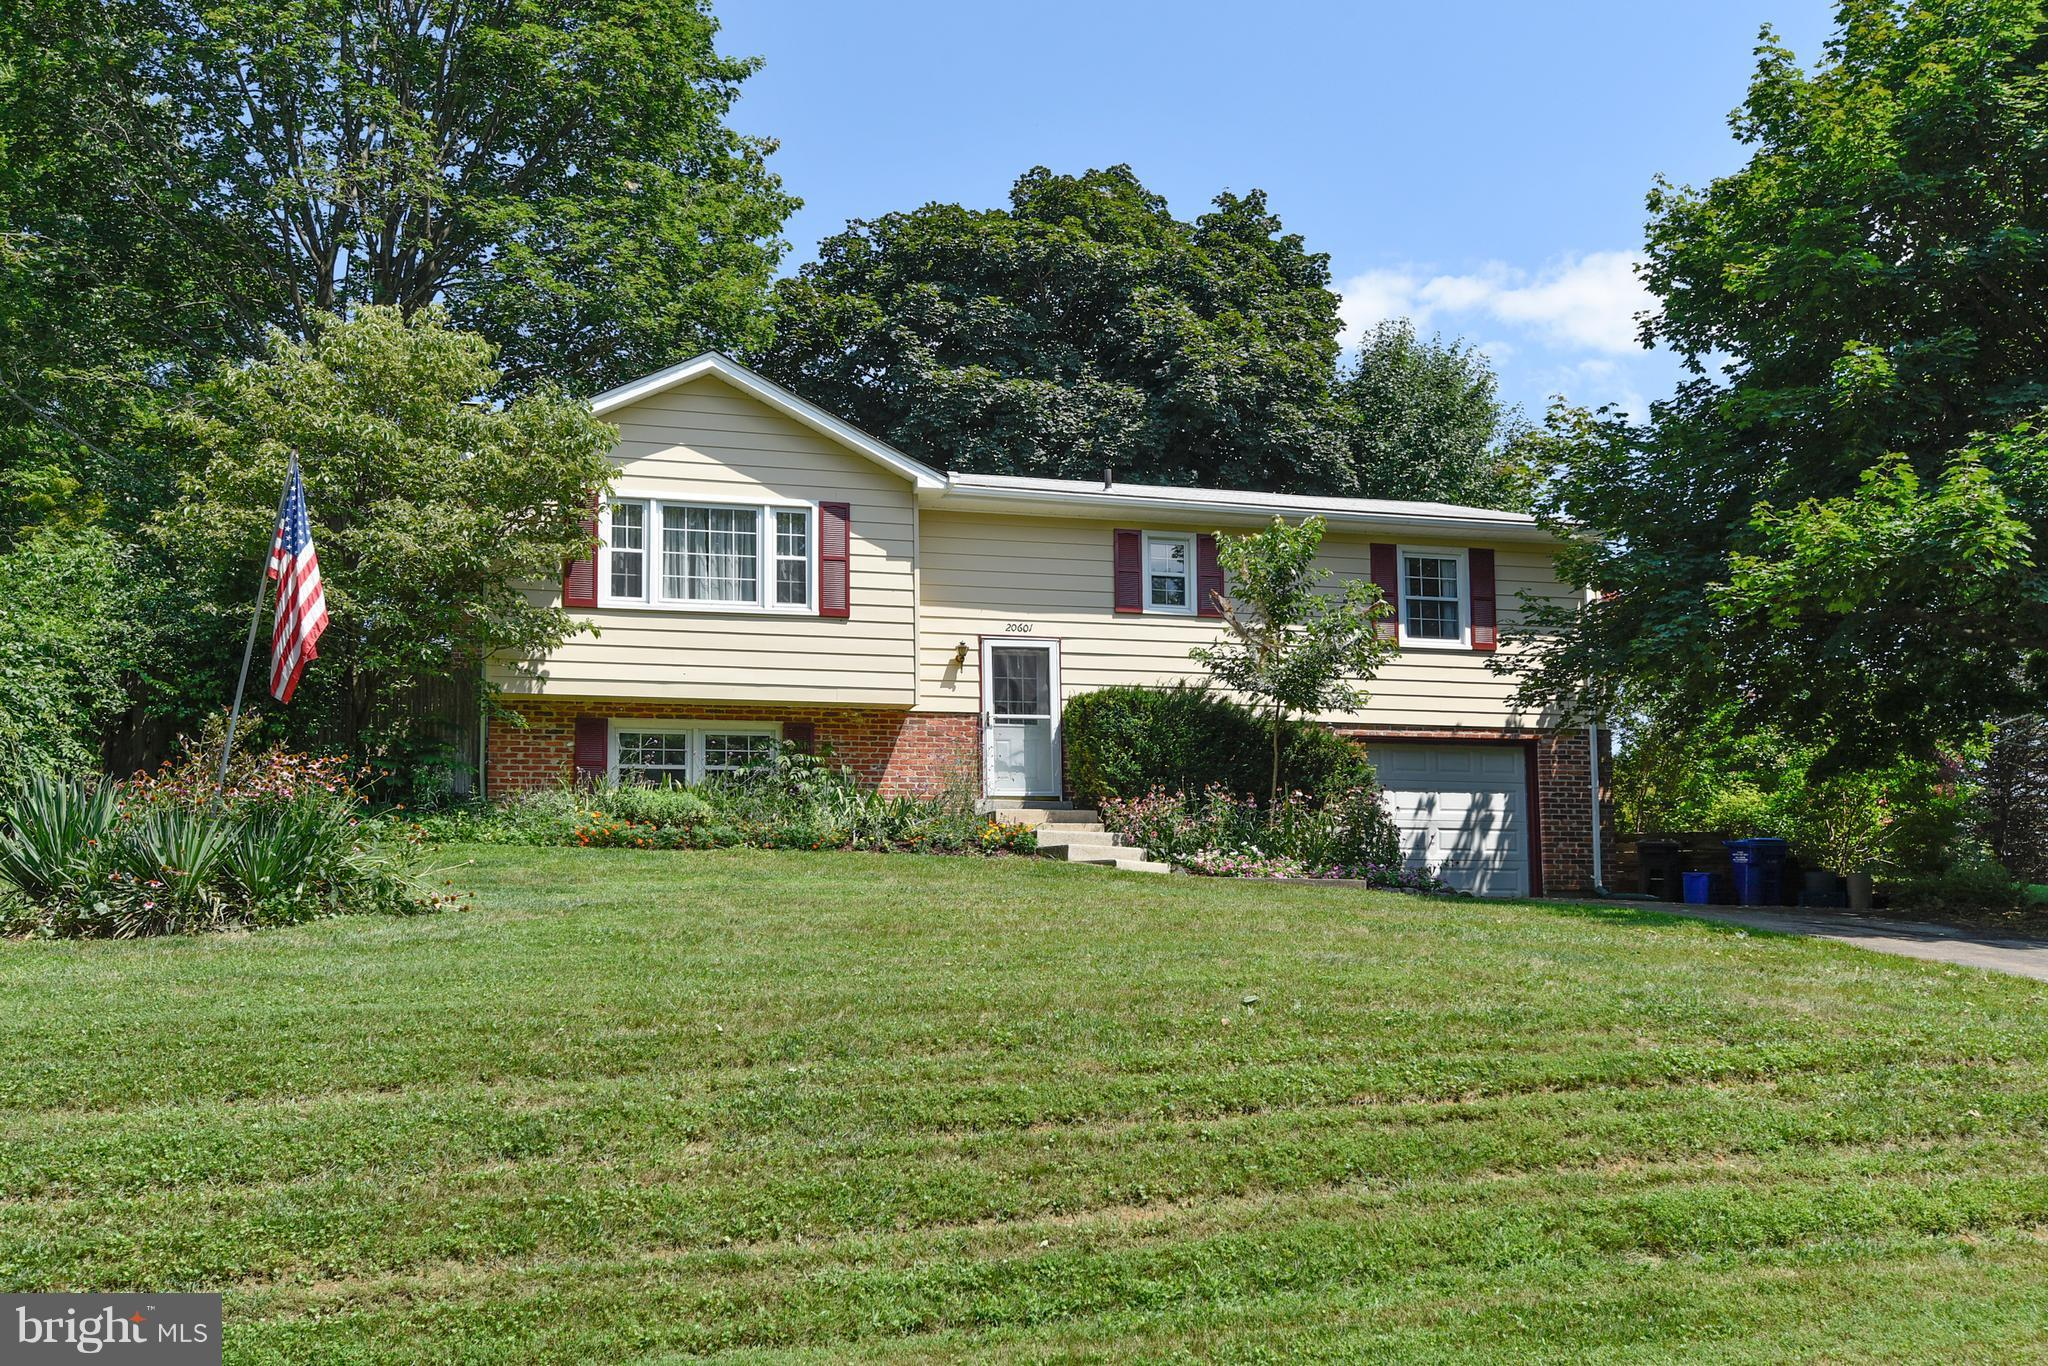 20601 TOP RIDGE DRIVE, BOYDS, MD 20841